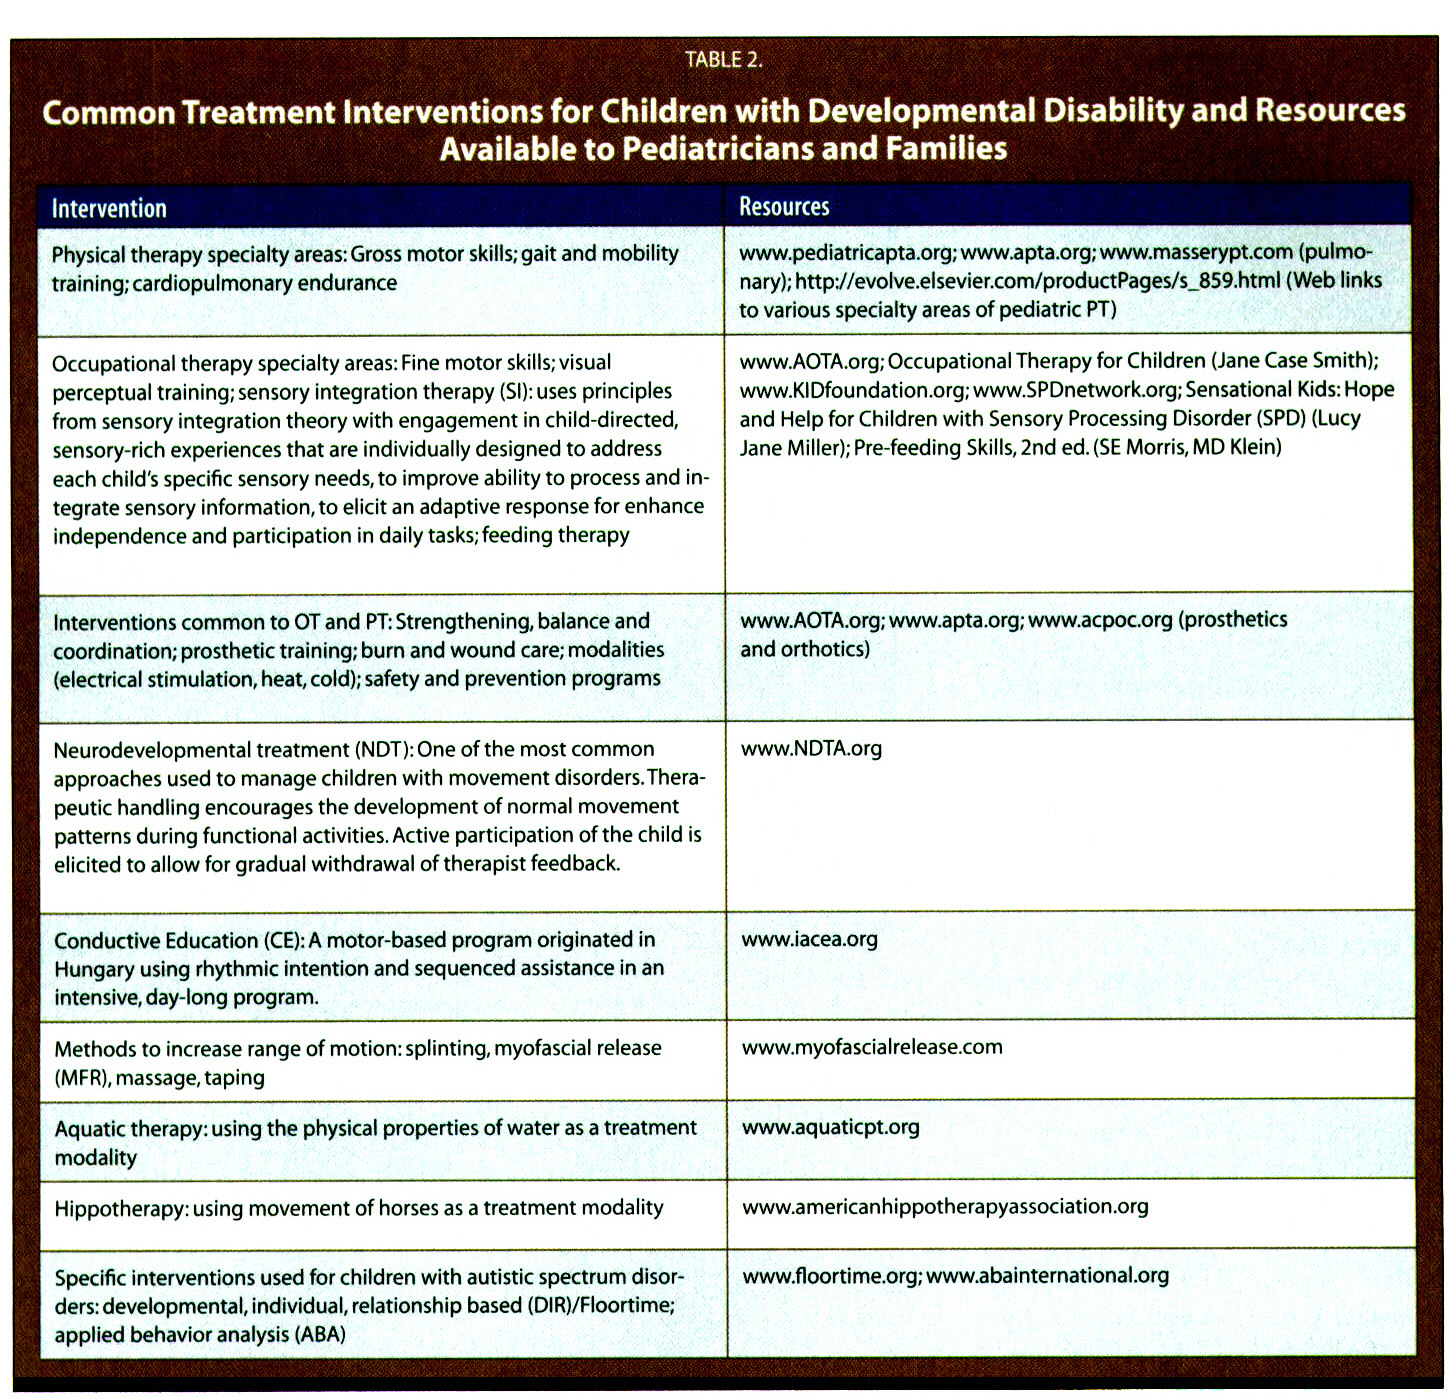 TABLE 2.Common Treatment Interventions for Children with Developmental Disability and Resources Available to Pediatricians and Families